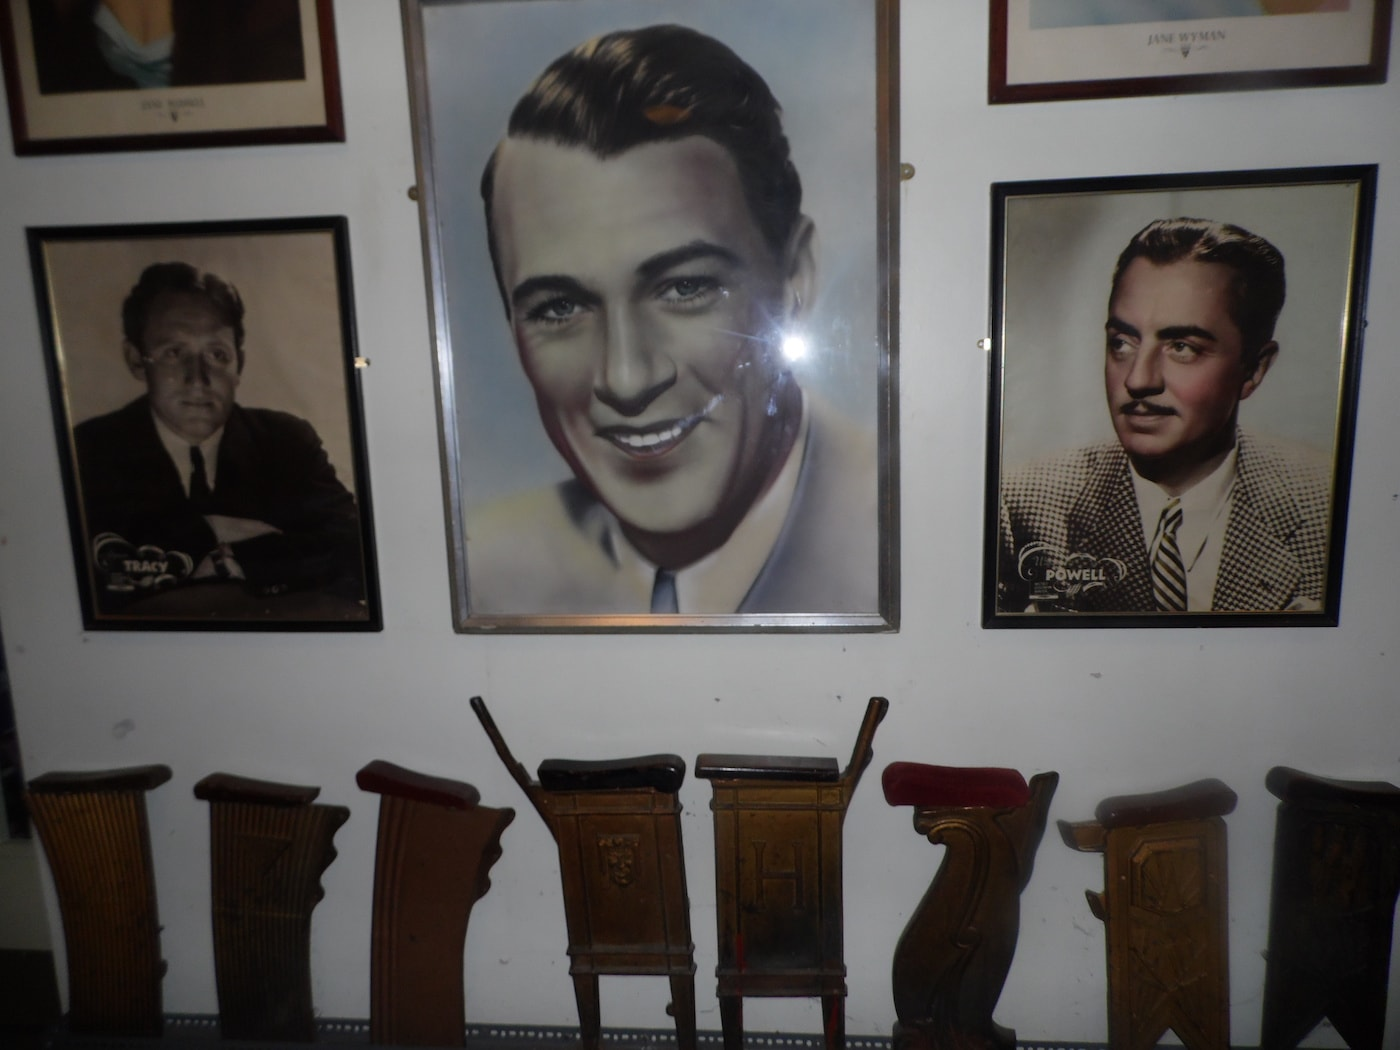 Vintage images of Spencer Tracy, Gary Cooper, and William Powell above man-made wooden cinema seats | © Lynsey Ford/Culture Trip